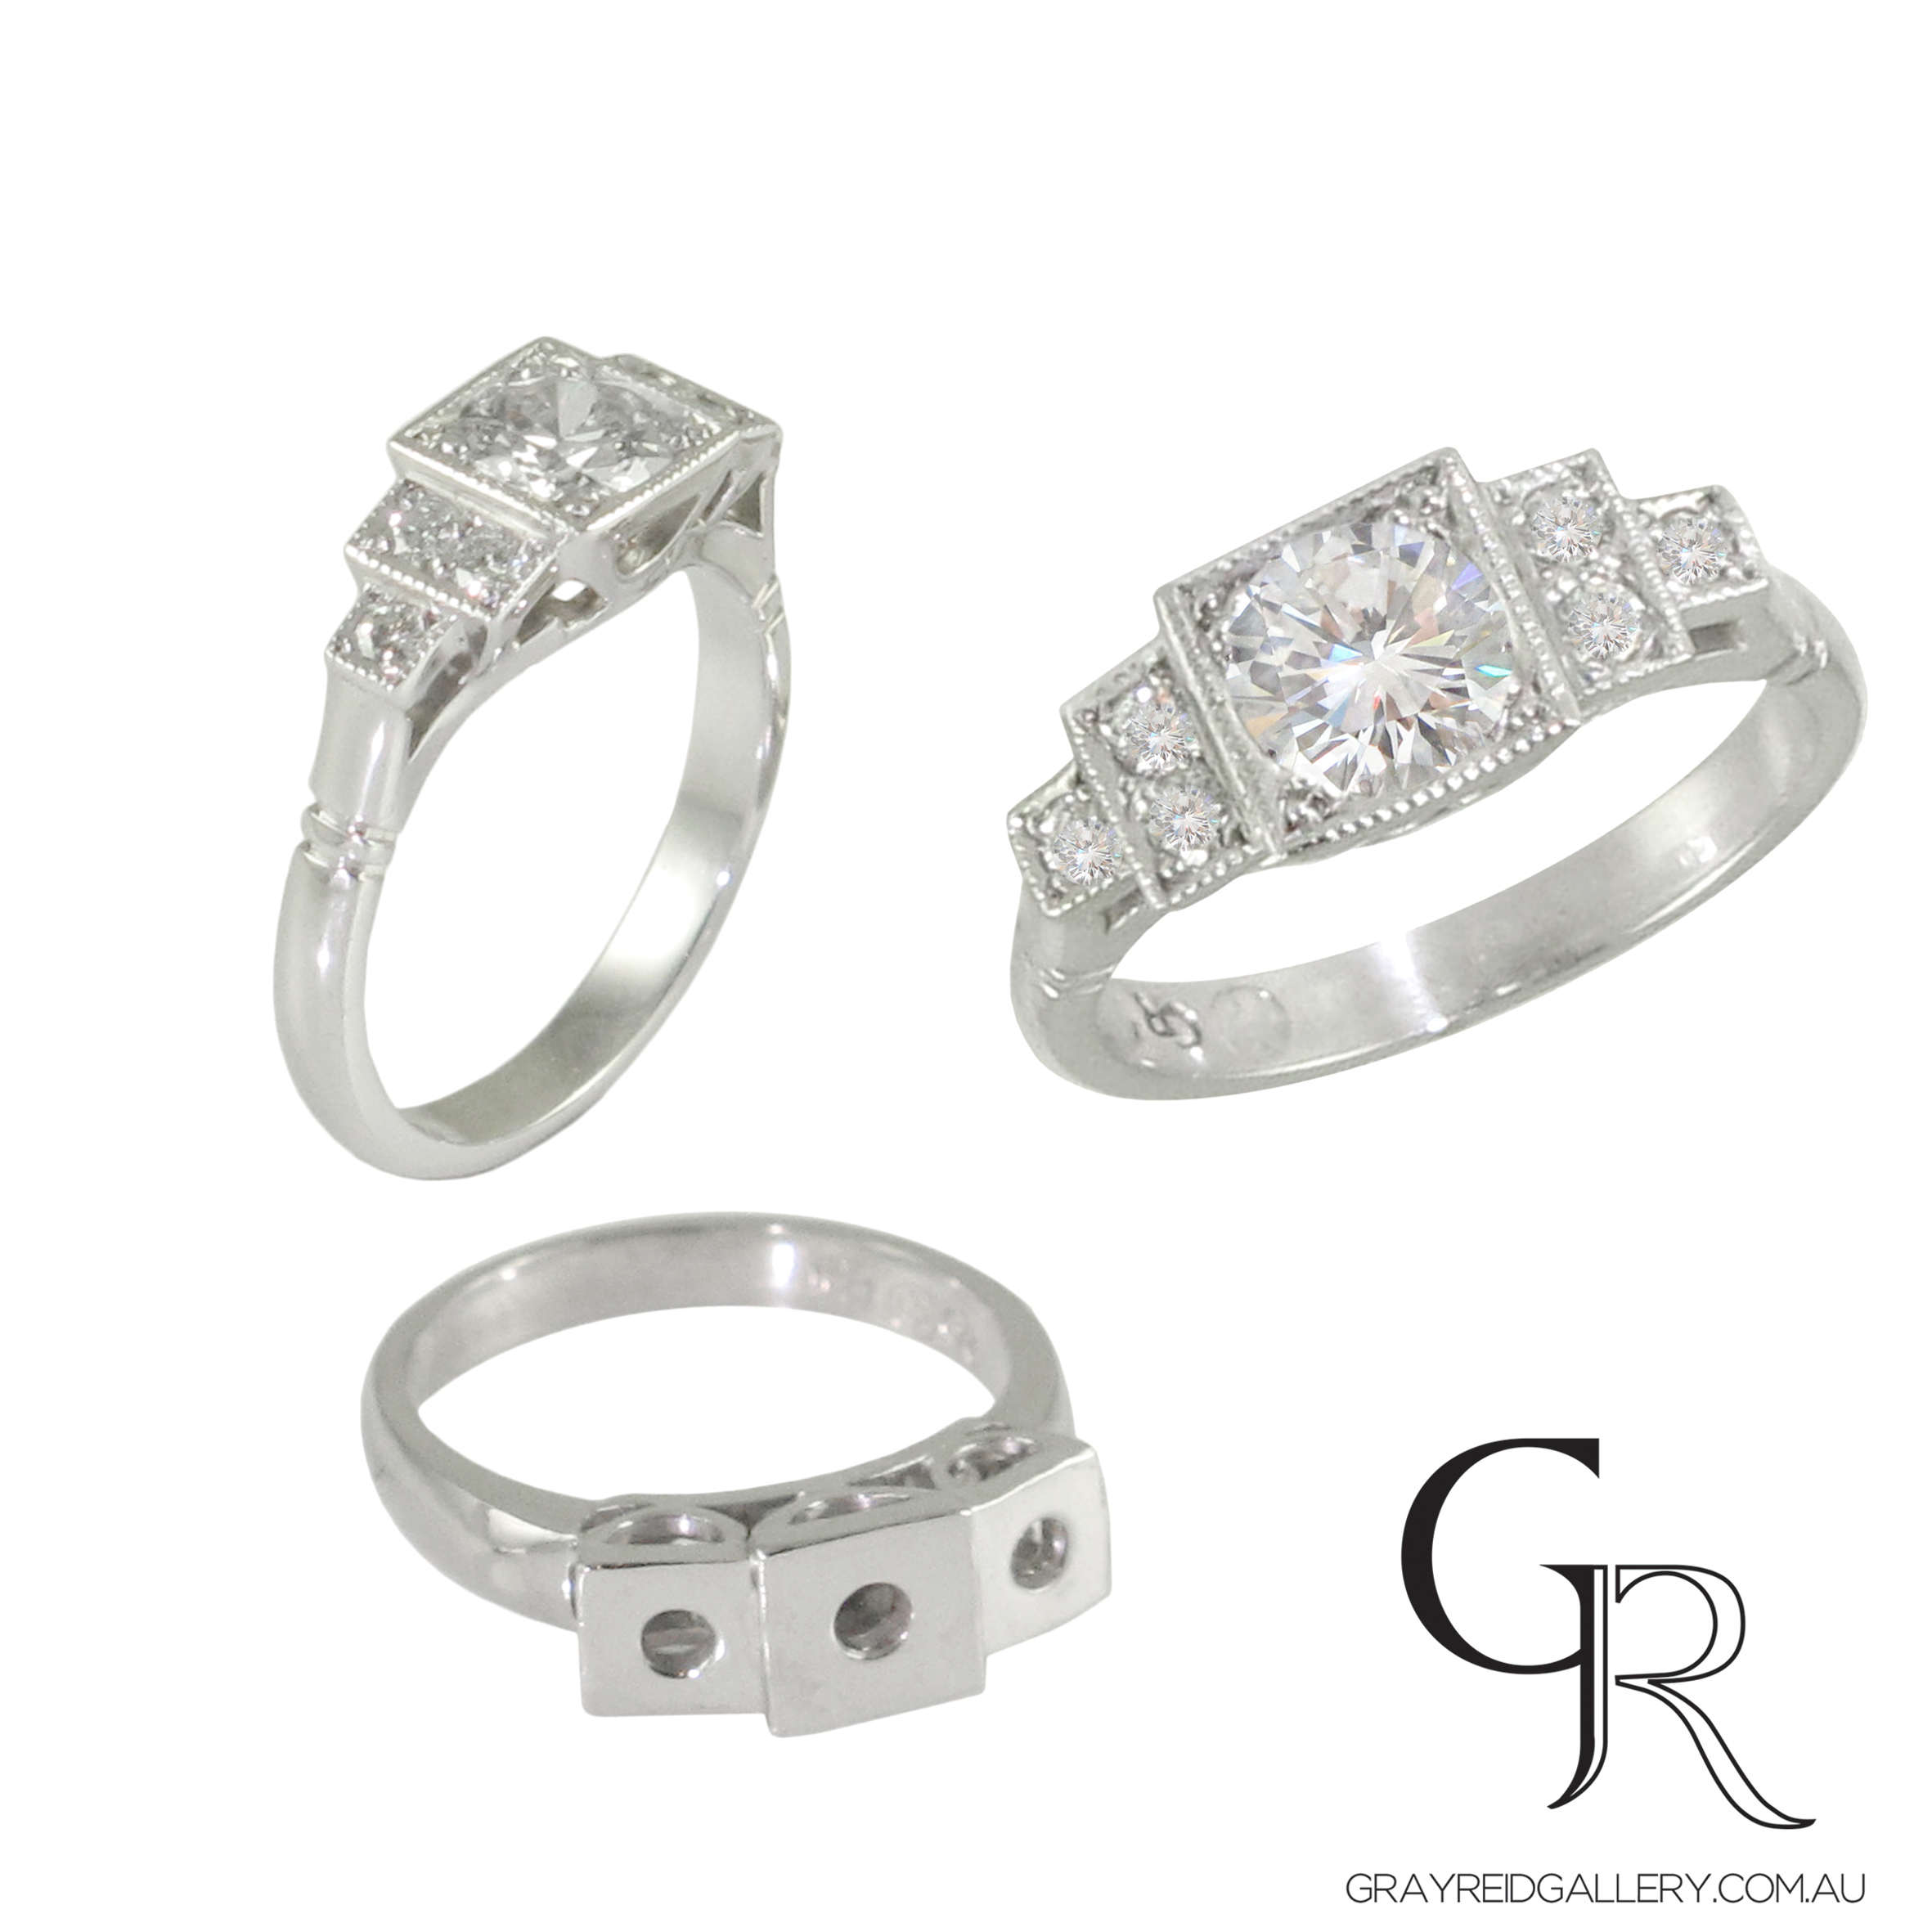 Hand Made Engagement Rings Melbourne Gray Reid Gallery.jpg